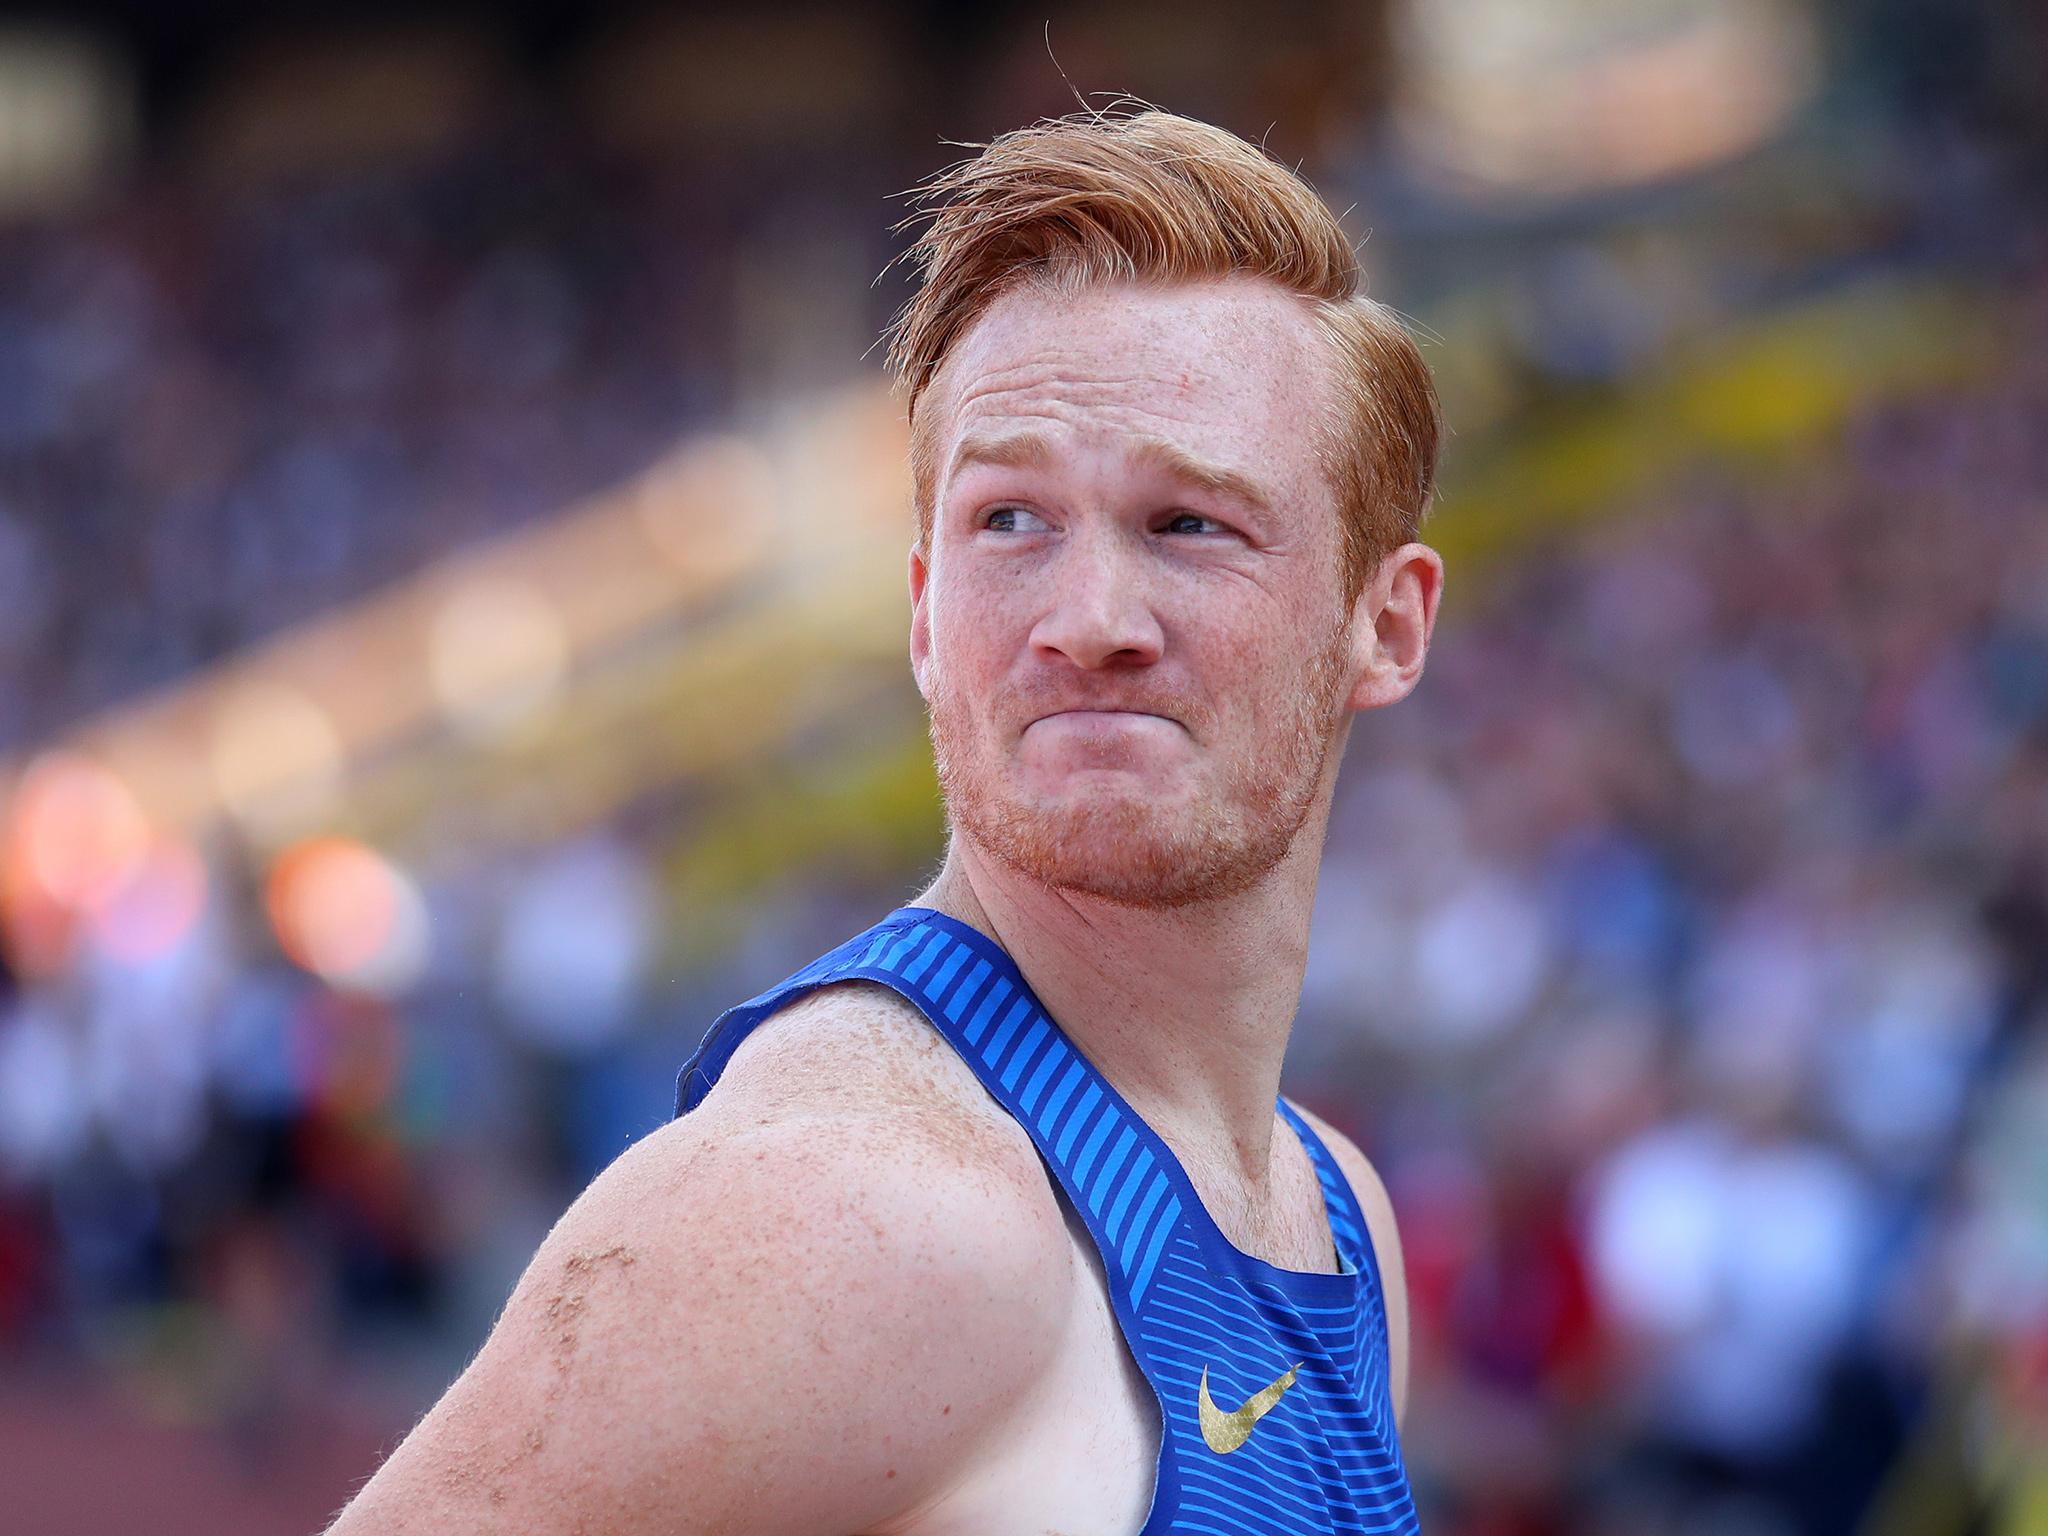 2048x1536 - Greg Rutherford Wallpapers 20